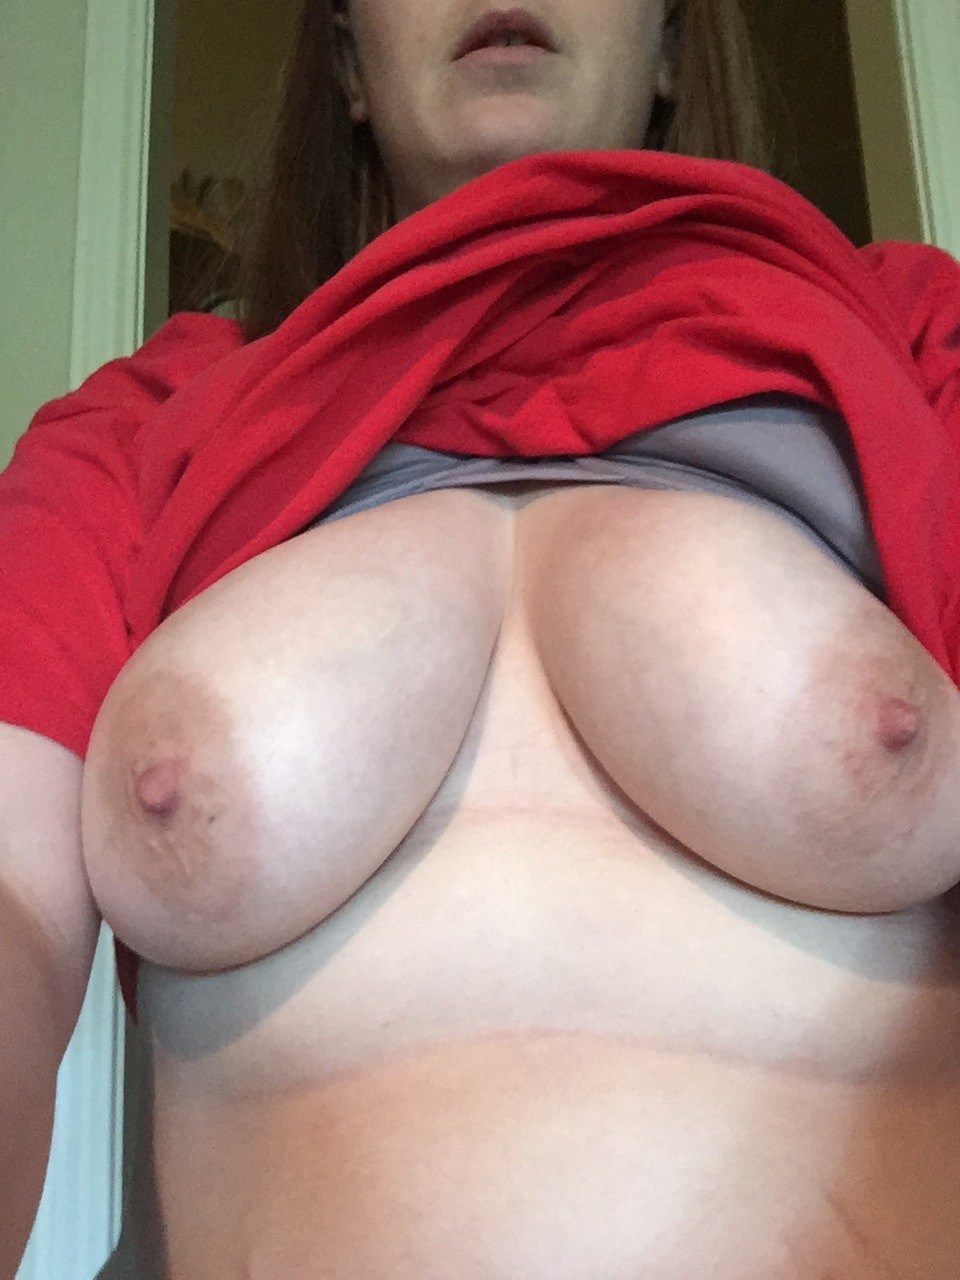 casual encounters craigslist busty